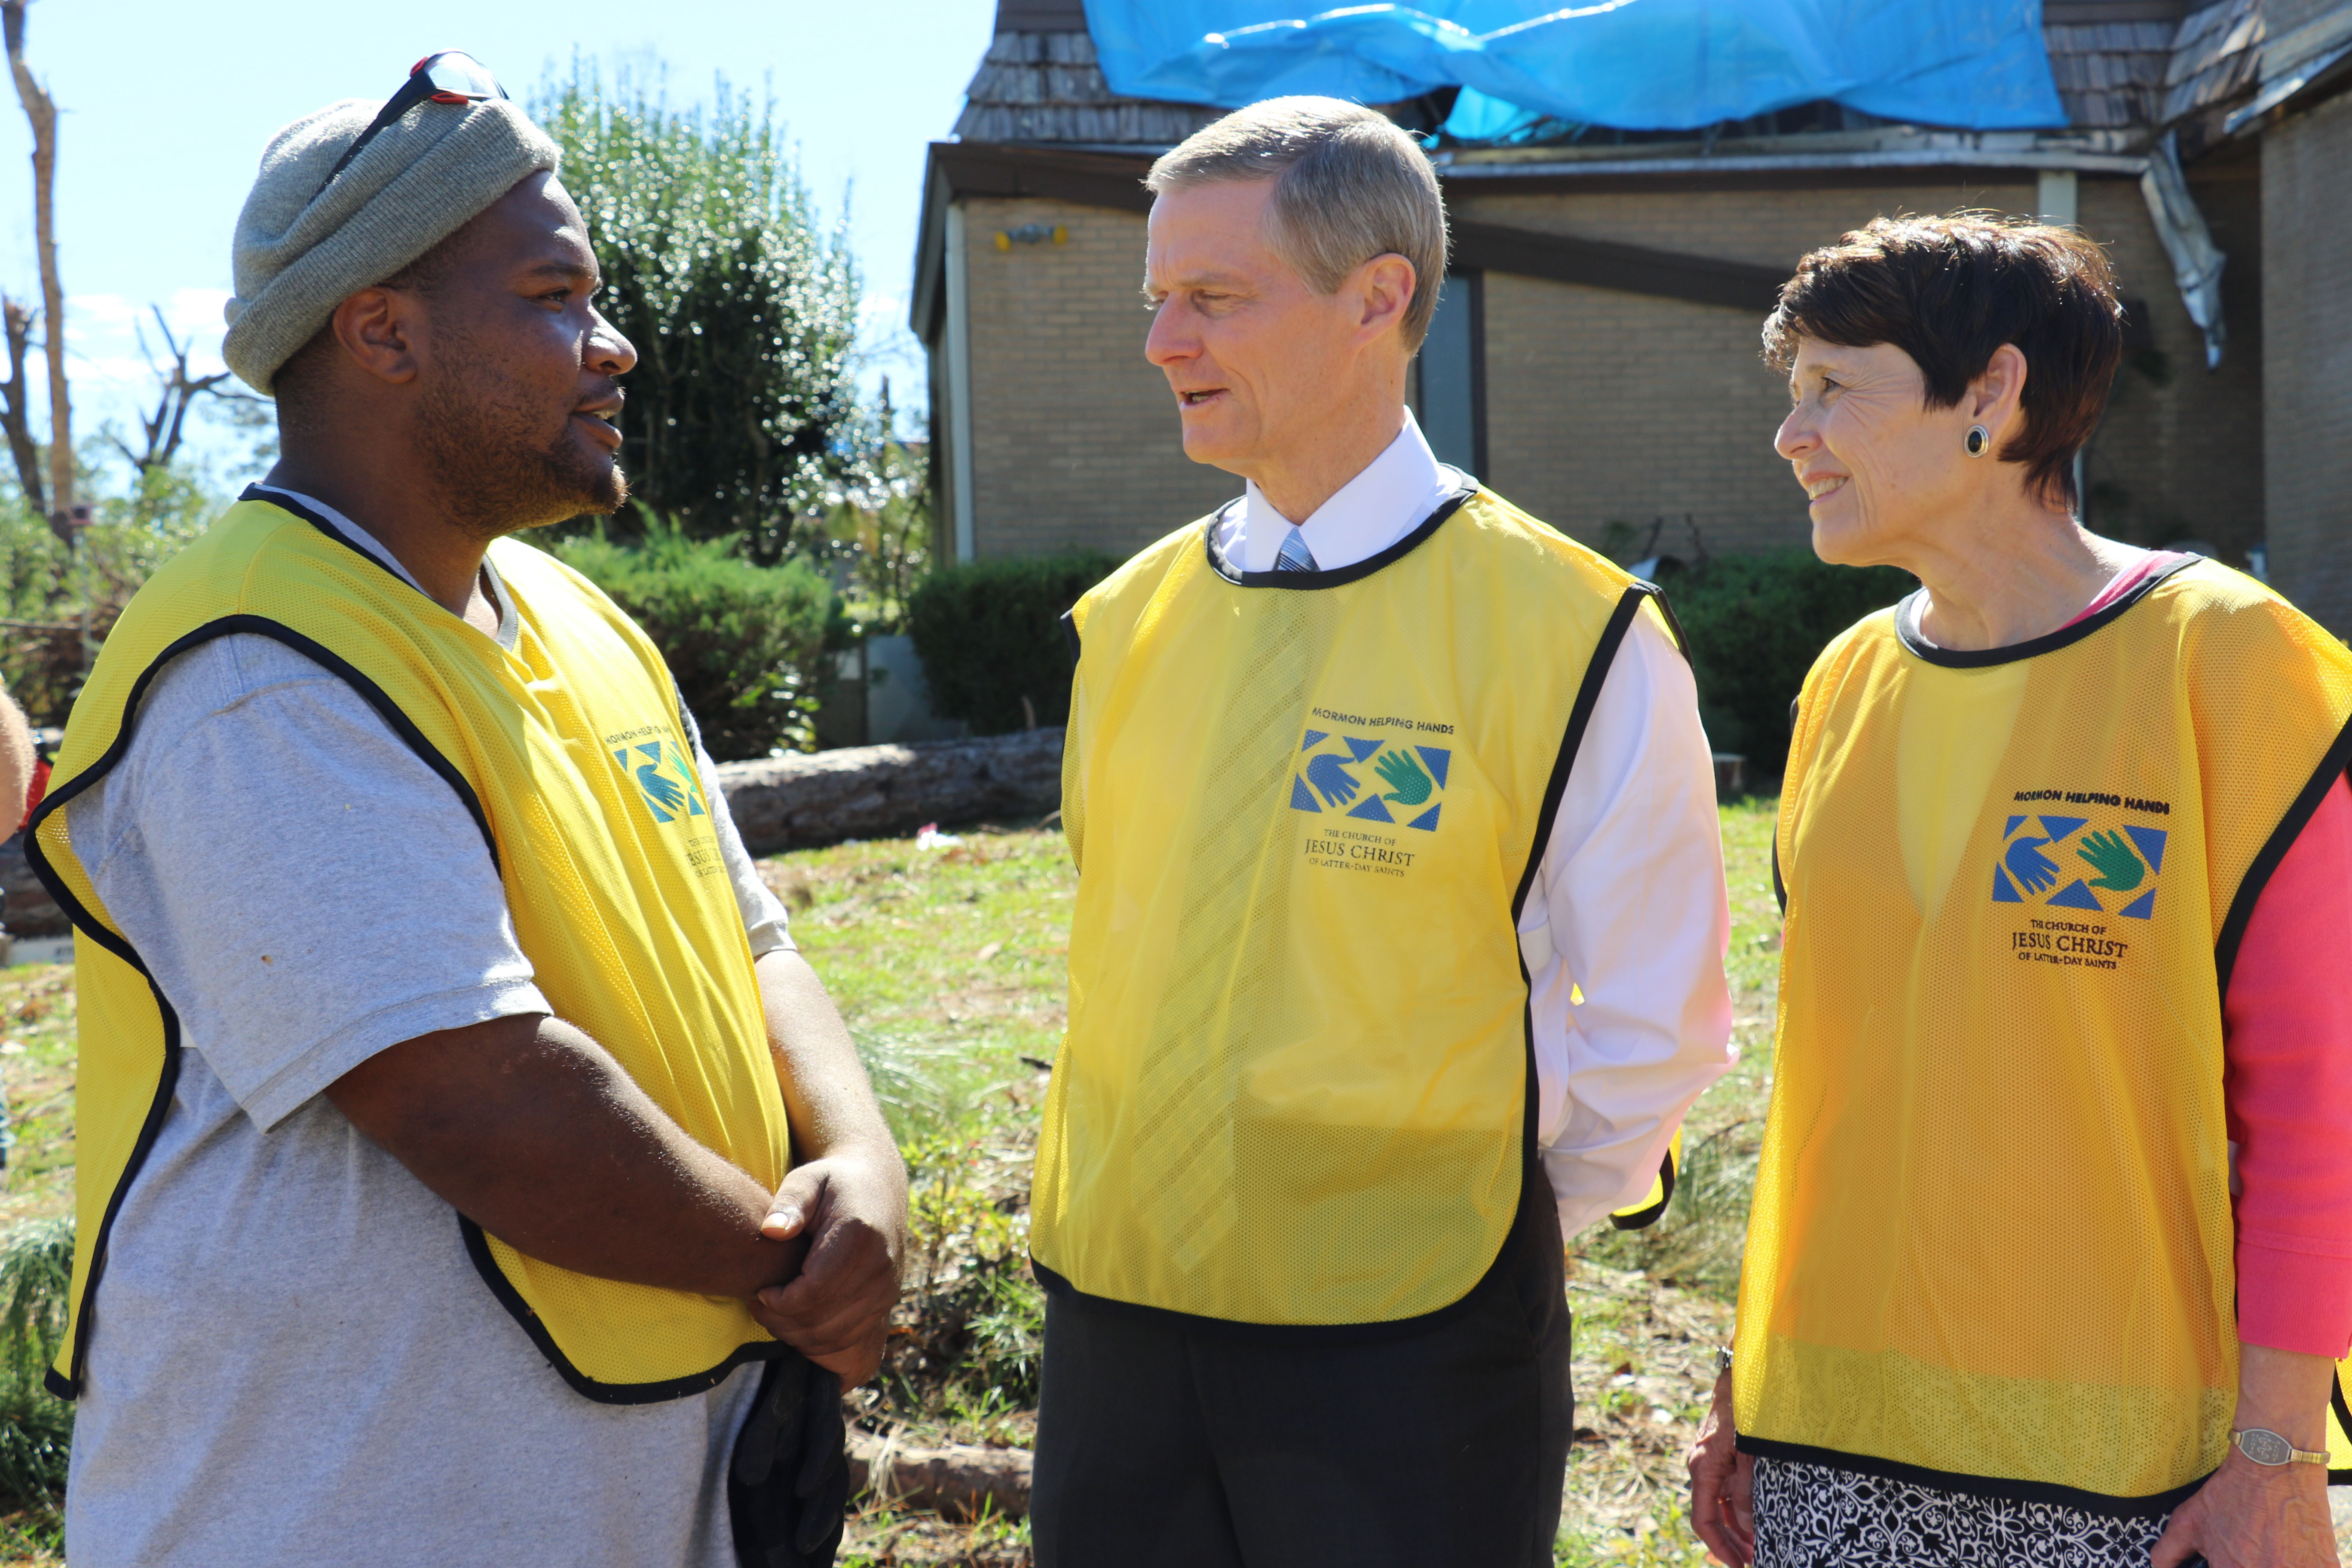 Elder David A. Bednar of the Quorum of the Twelve Apostles and his wife, Sister Susan Bednar, visit Latter-day Saints in Florida, October 21, 2018. Church leaders toured the areas hit by the recent hurricanes.